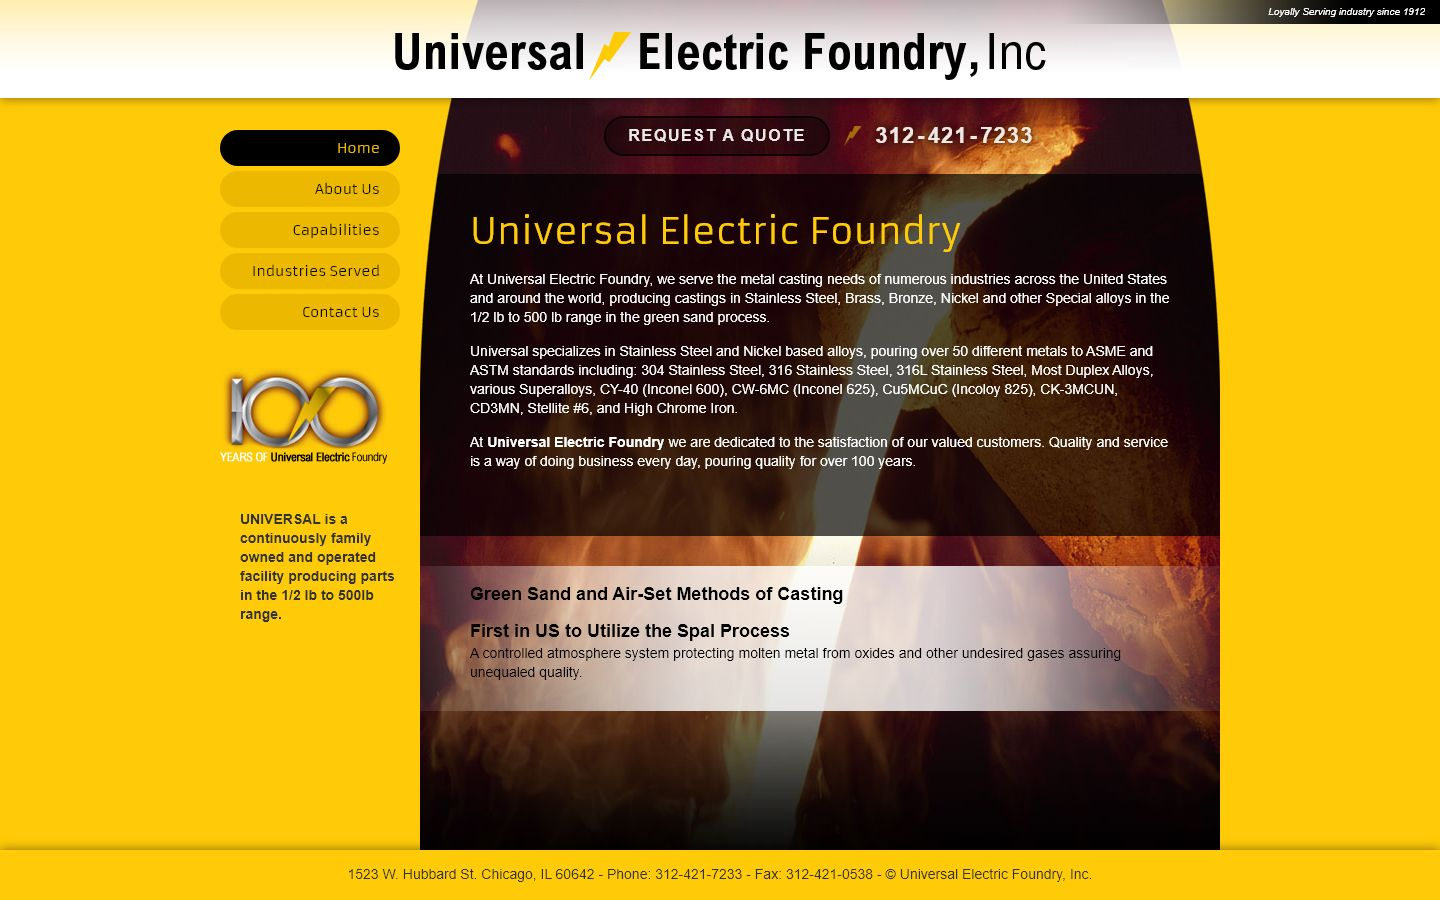 Universal Electric Foundry